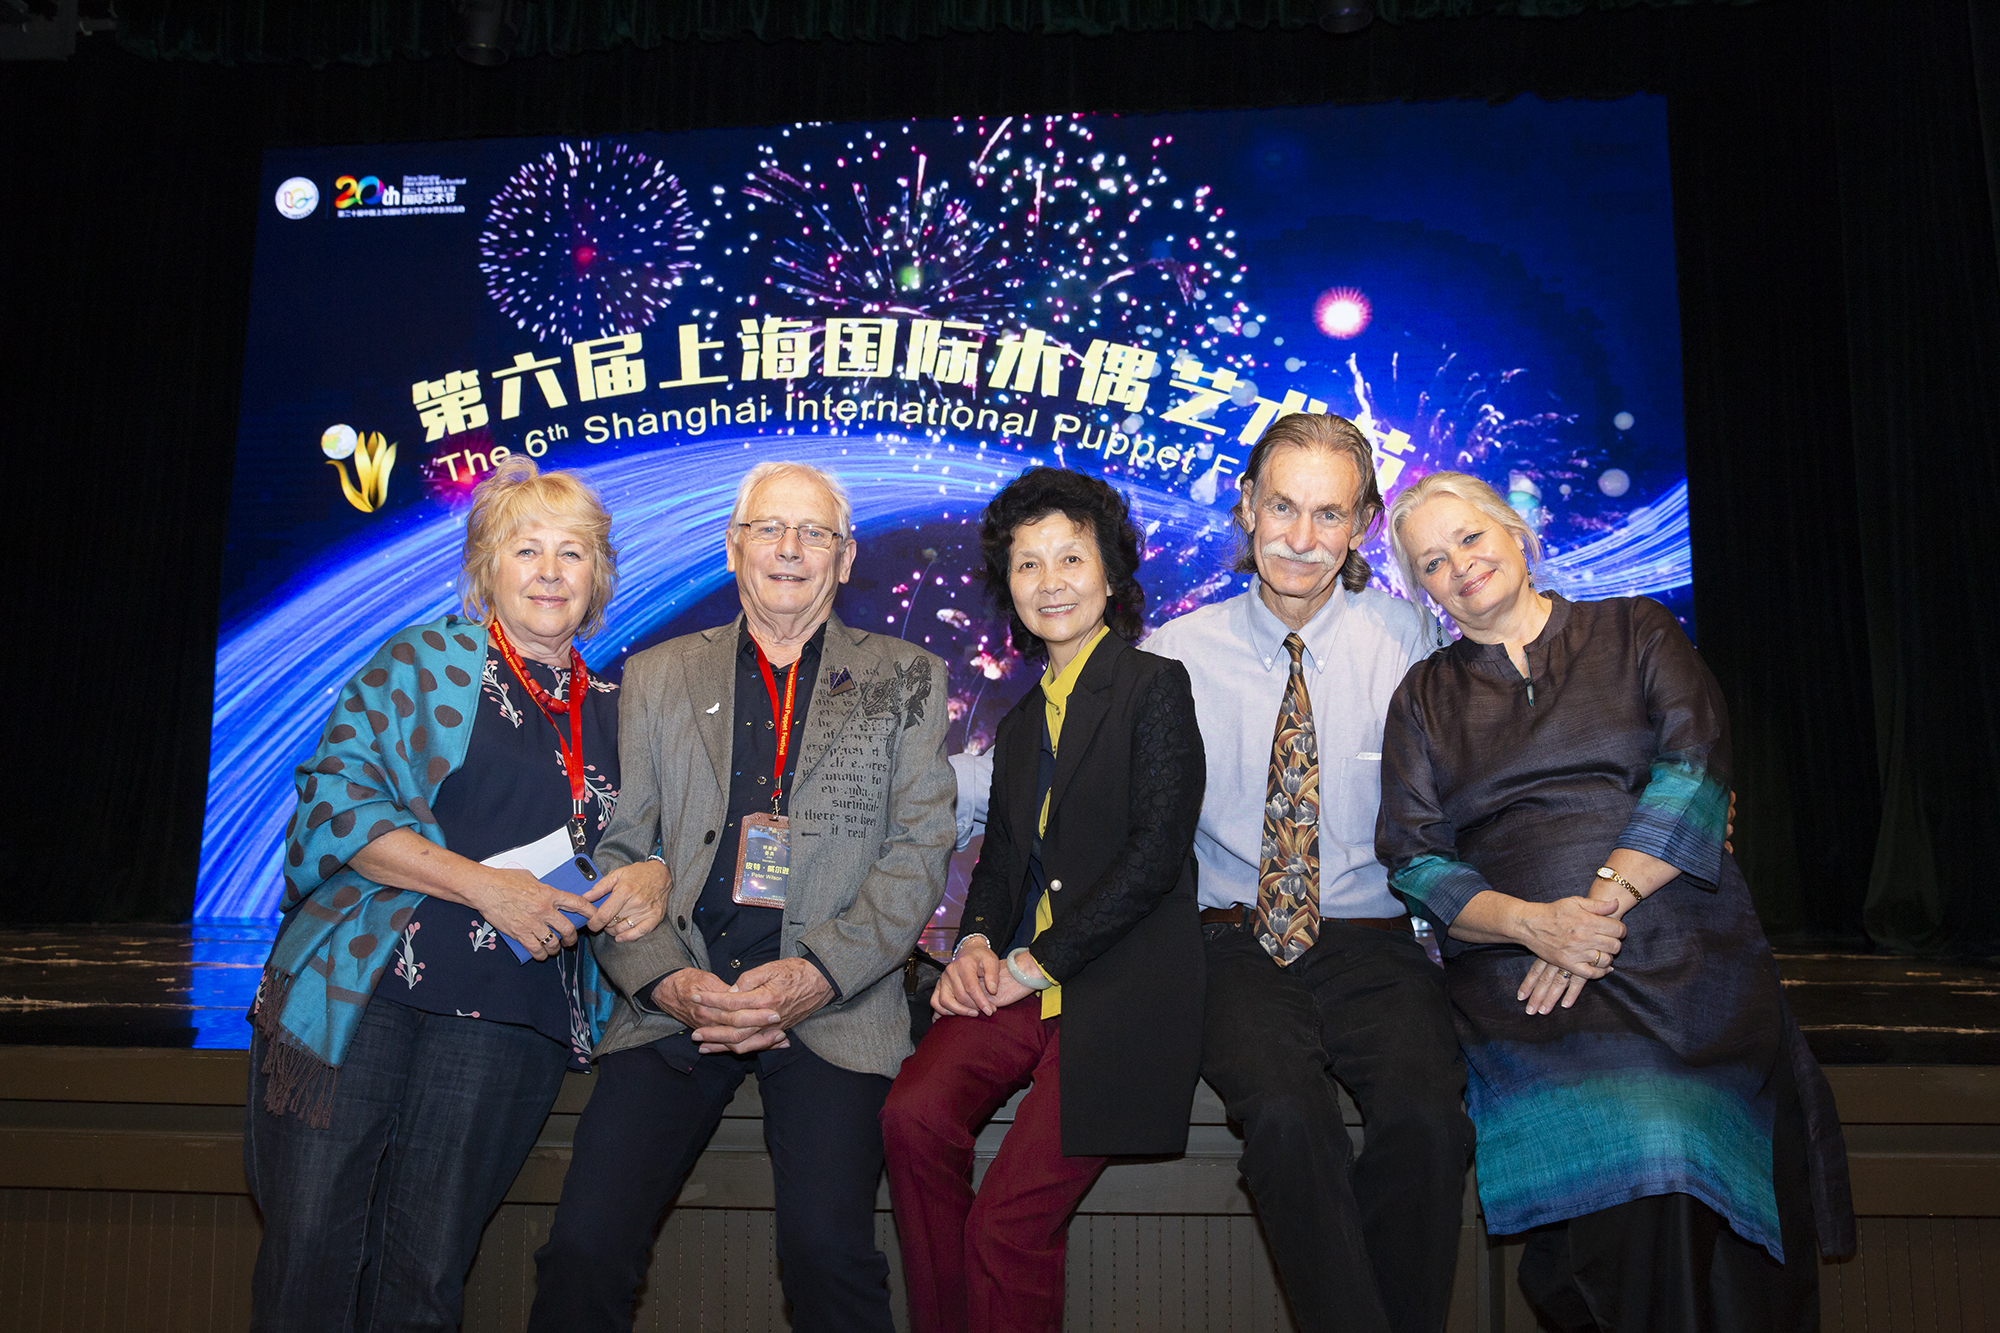 Photo courtesy of UNIMA CHina. Cathryn Anne Robinson (from New Zealand, partner and co-founder with Peter of puppet companies in Hobart, Fremantle and Wellington), L. Peter Wilson, Tang Dayu, David Heesen, Karen Smith.